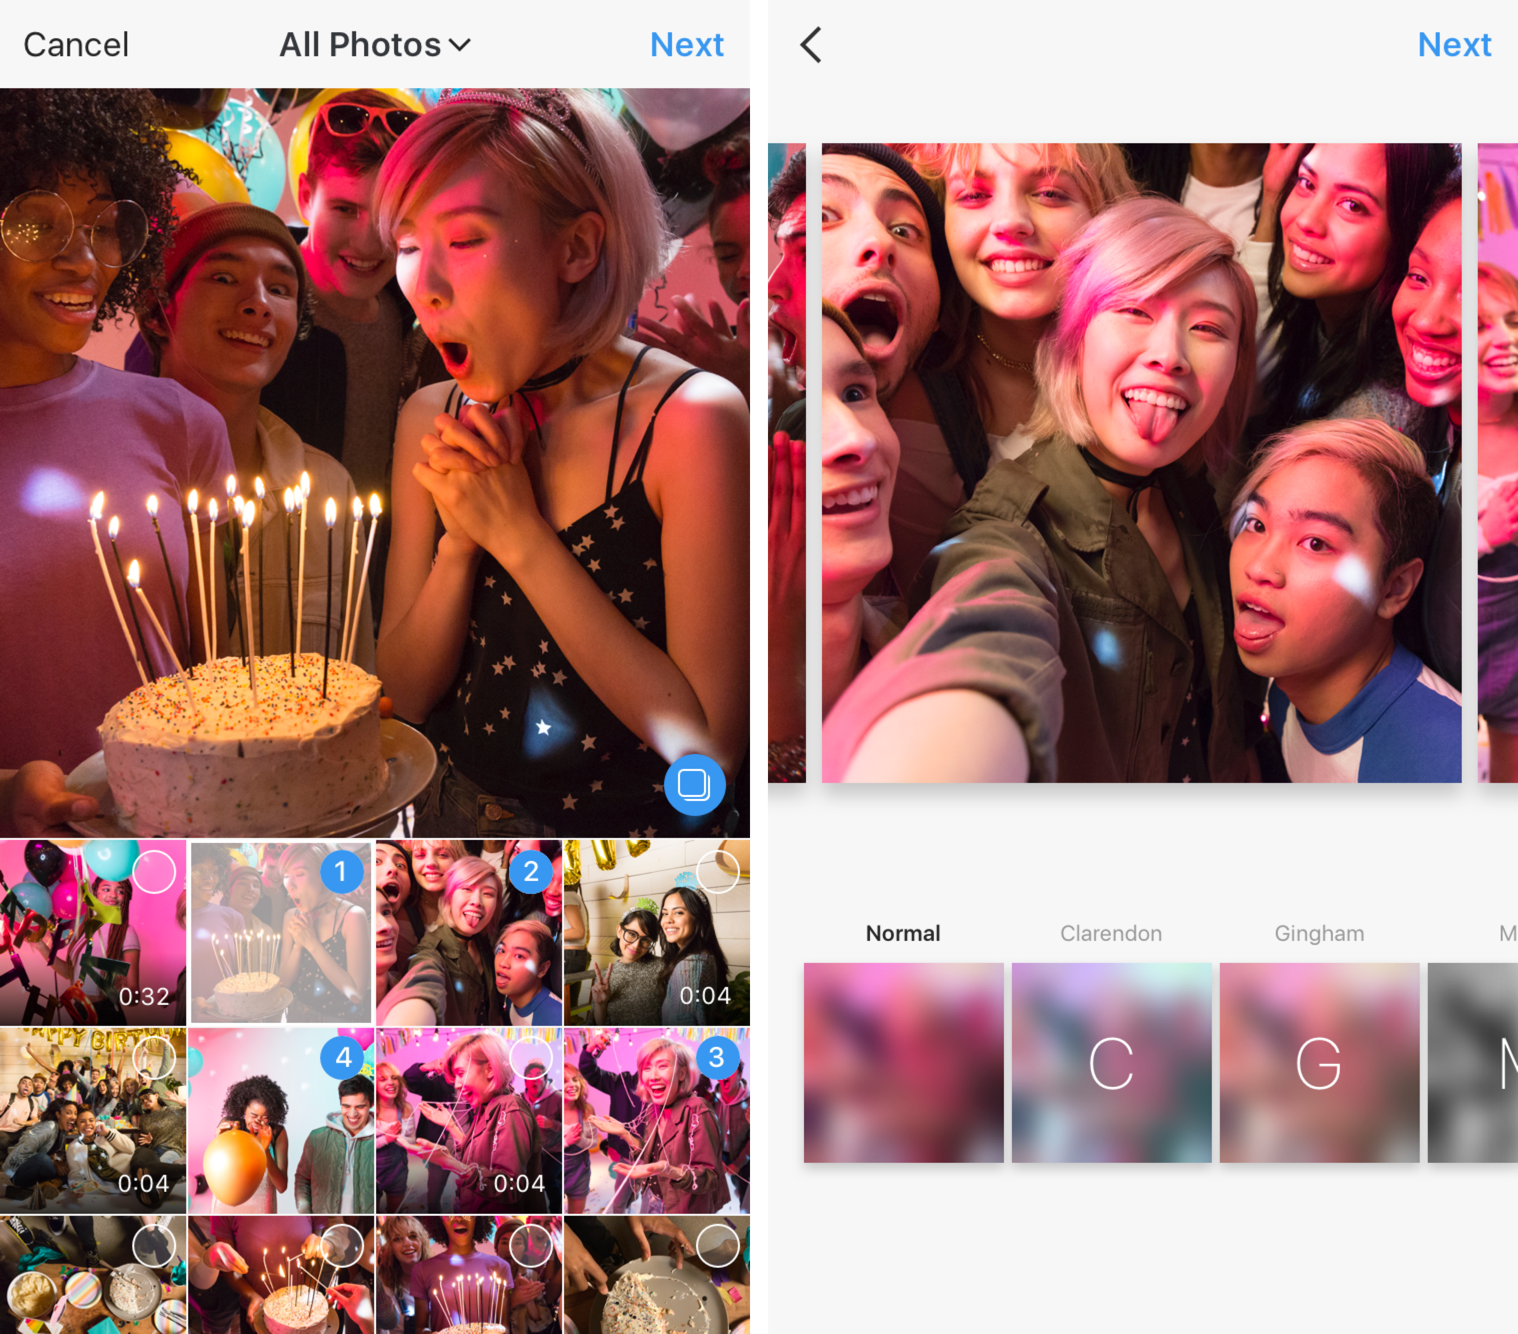 Instagram Now Lets You Post Galleries Of Photos And Videos